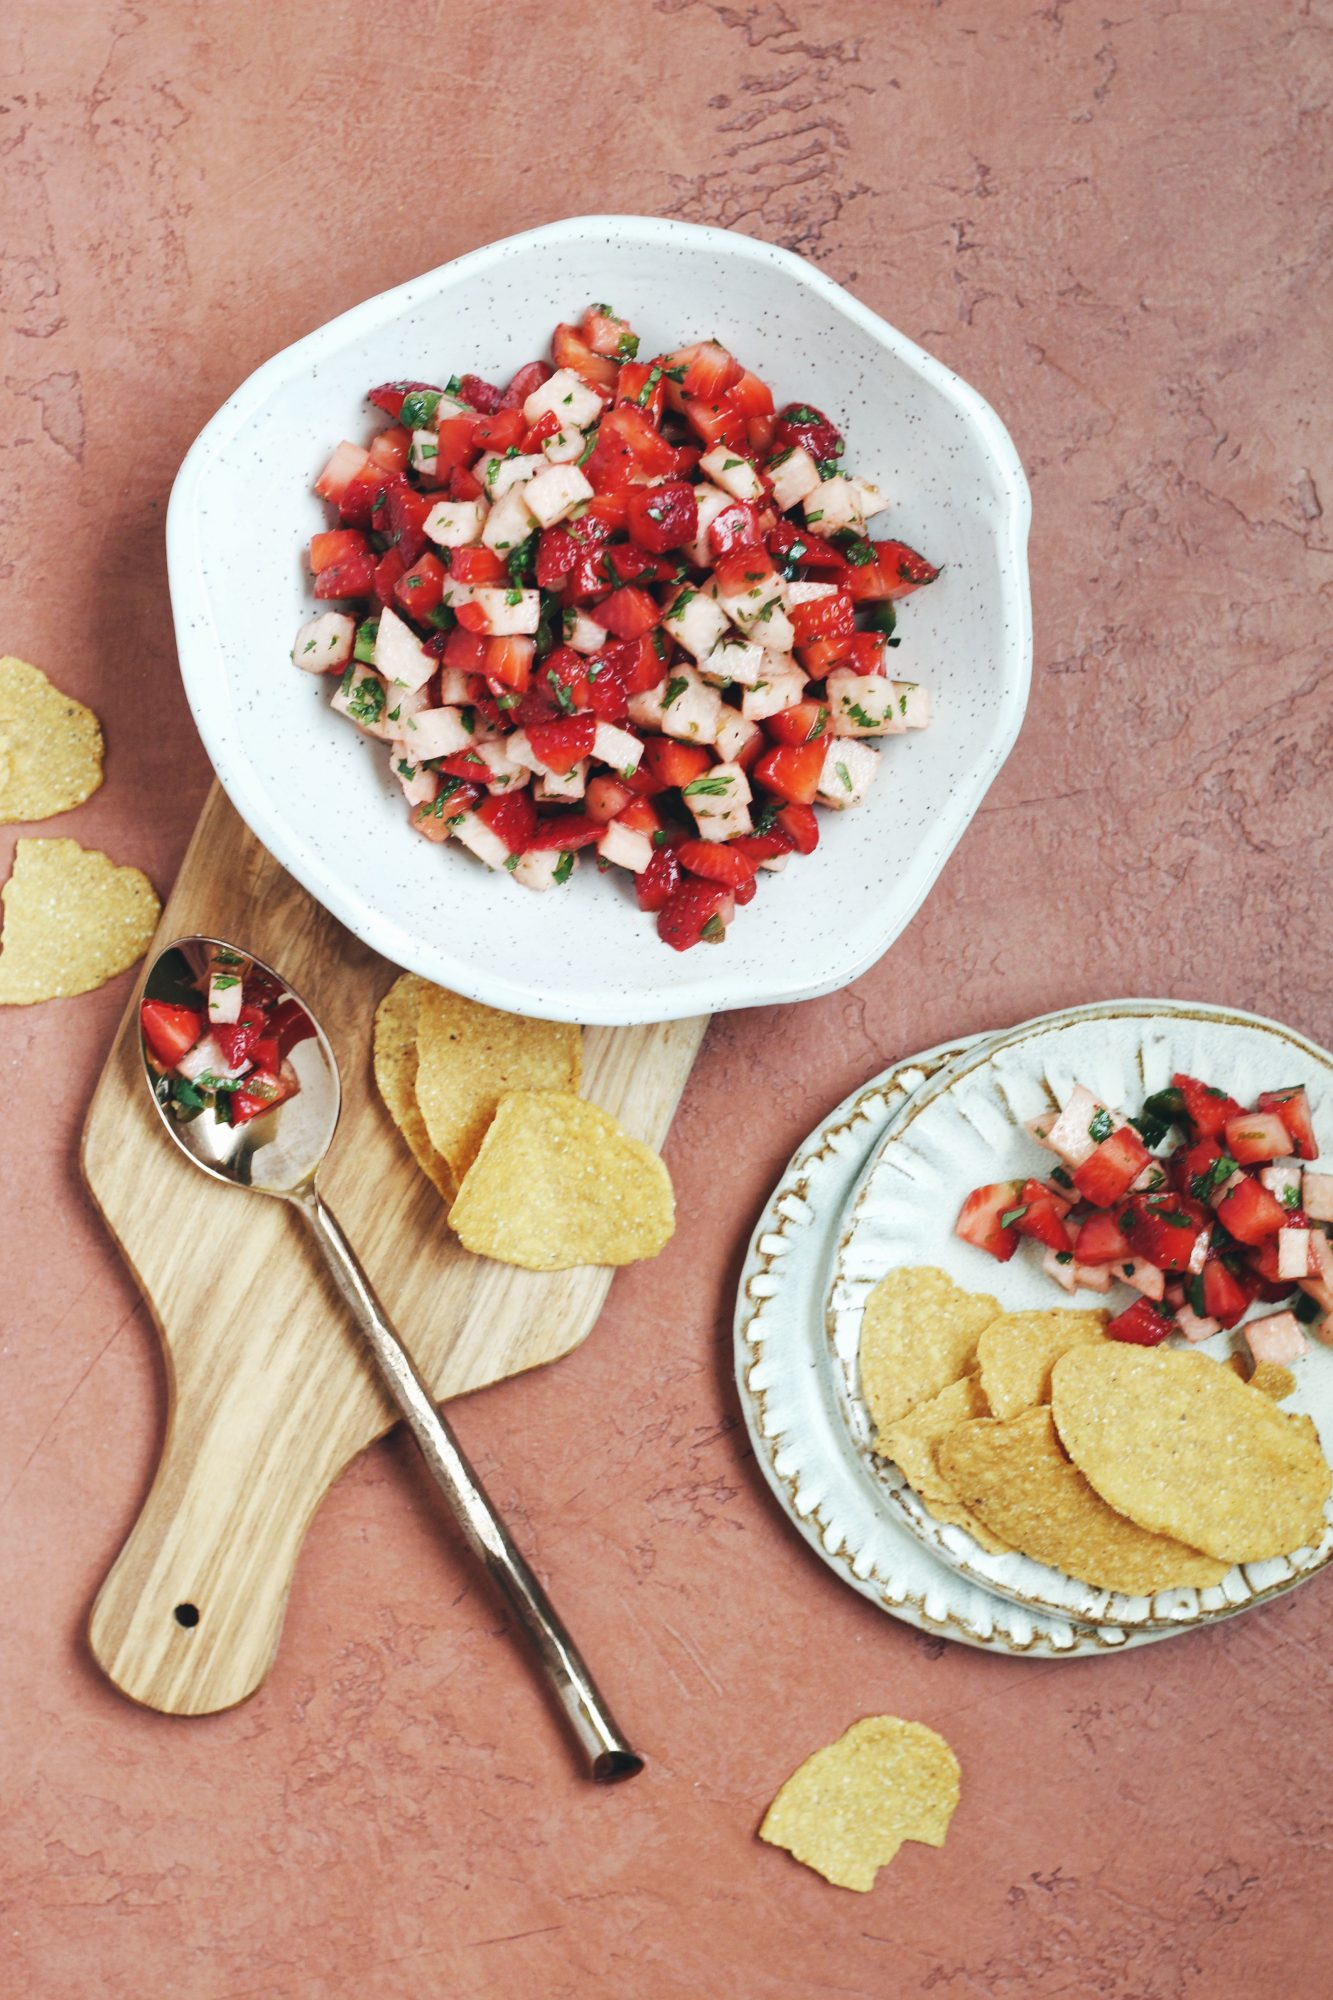 Strawberry salsa gets made with jicama for a crunchy and refreshing bite